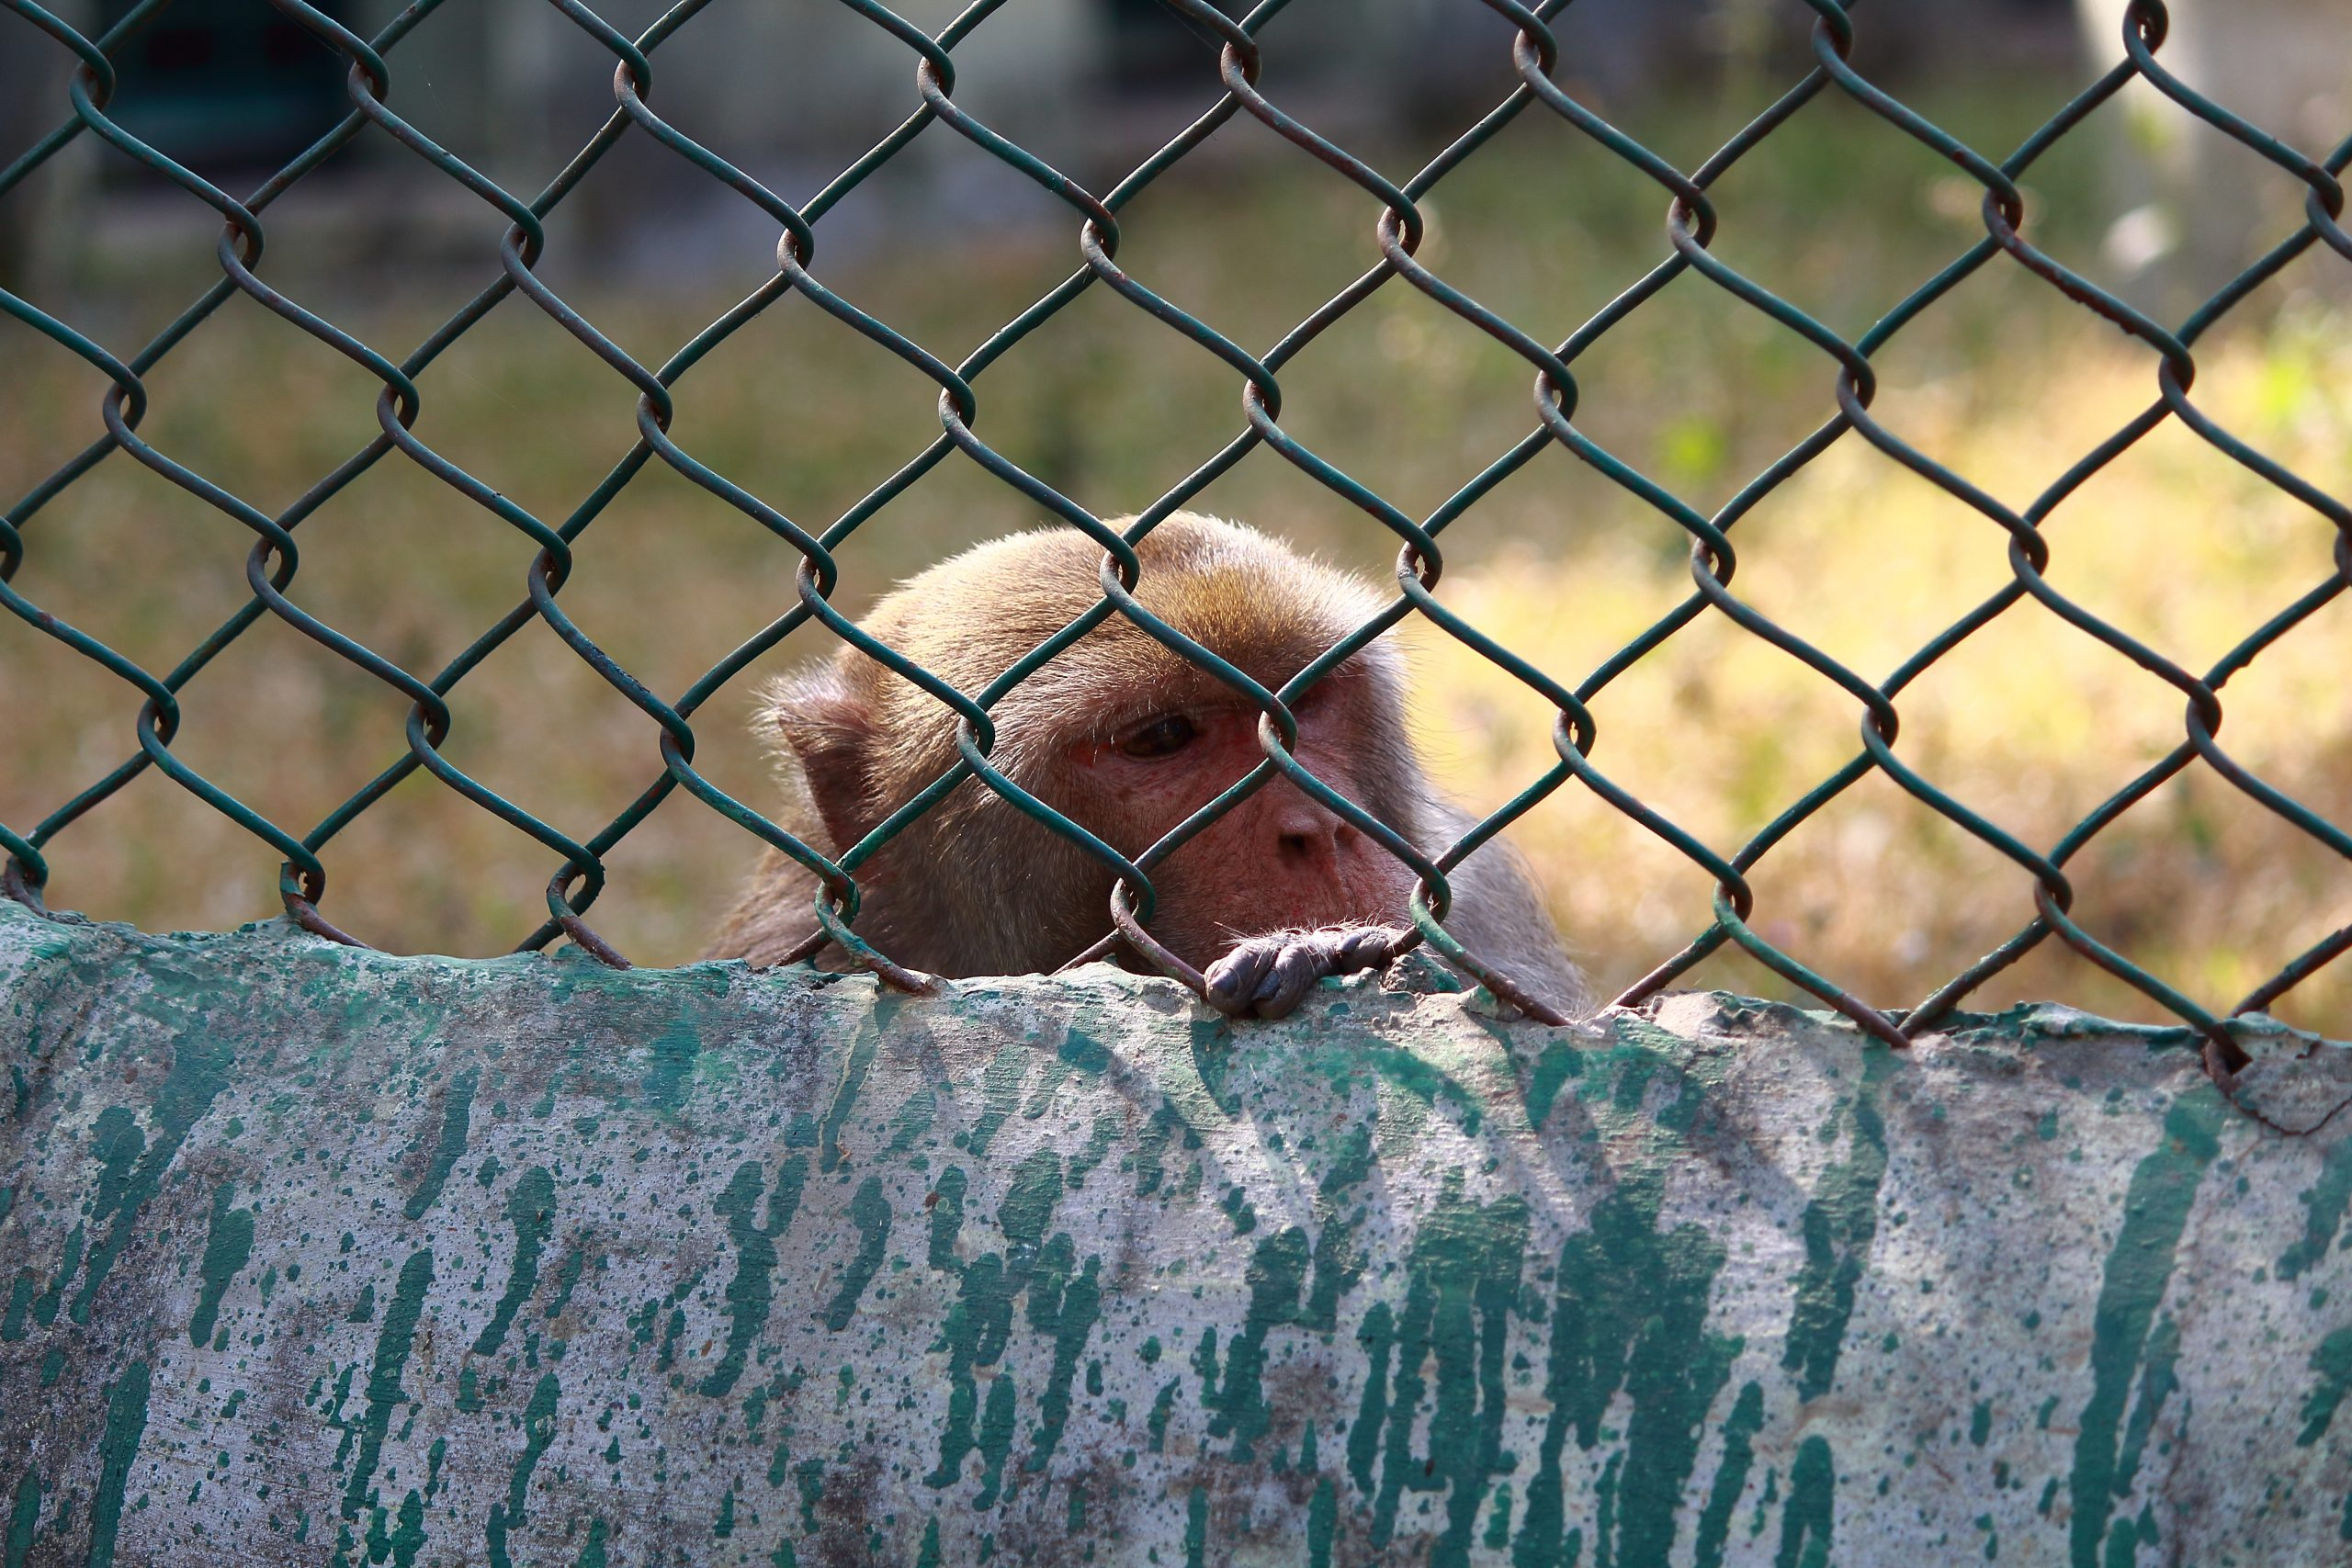 Monkey behind the steel cage